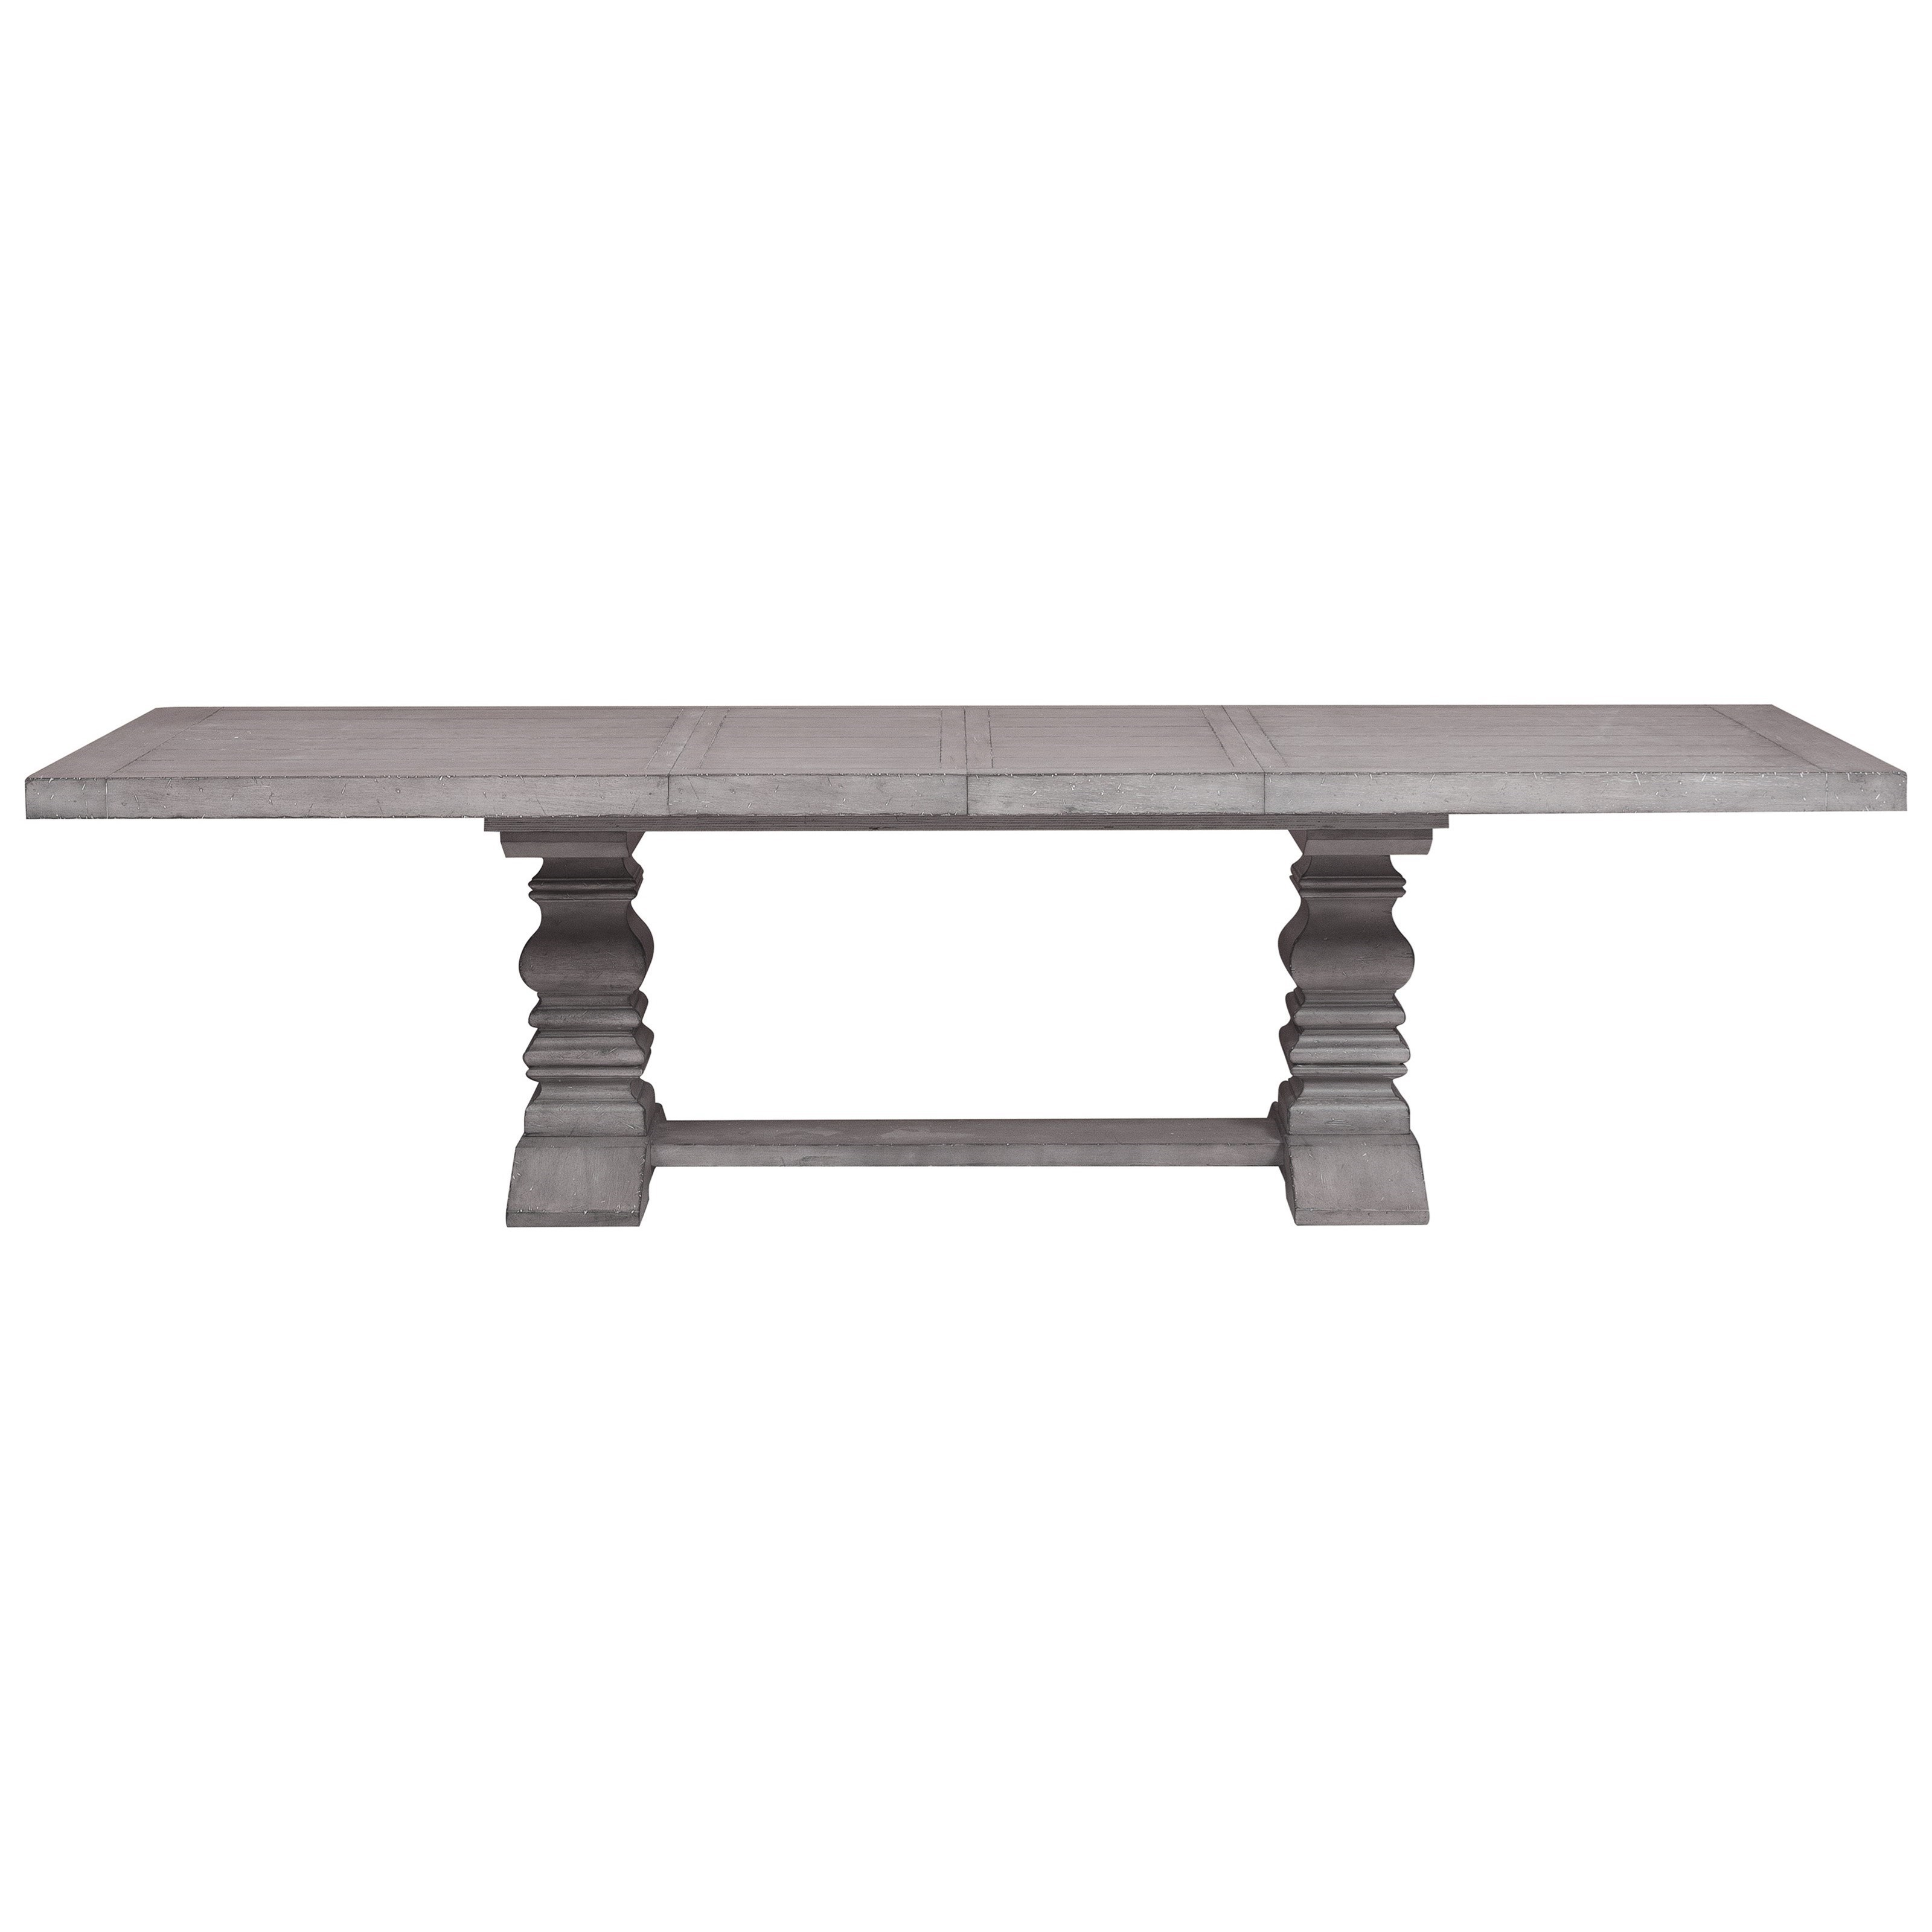 Prospect Hill Trestle Dining Table With Square Turned Pedestal Legs By  Samuel Lawrence